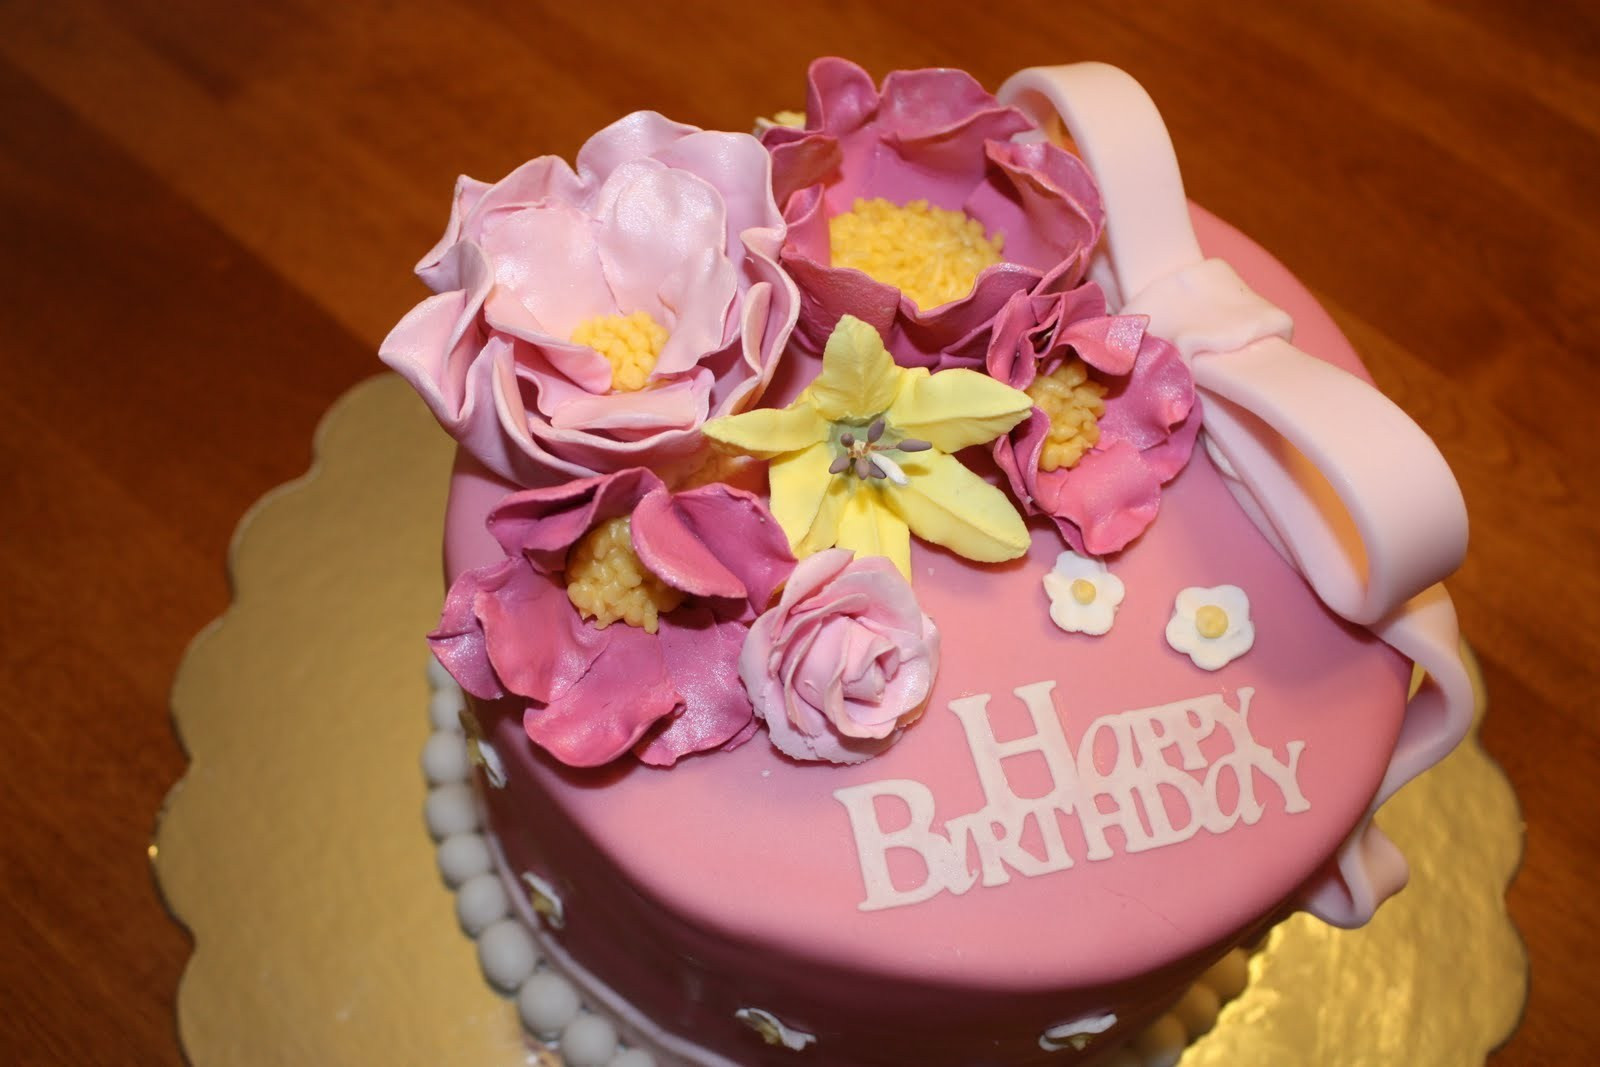 Best ideas about Happy Birthday Flowers And Cake . Save or Pin 10 Best Happy Birthday Wishes with Quotes Now.